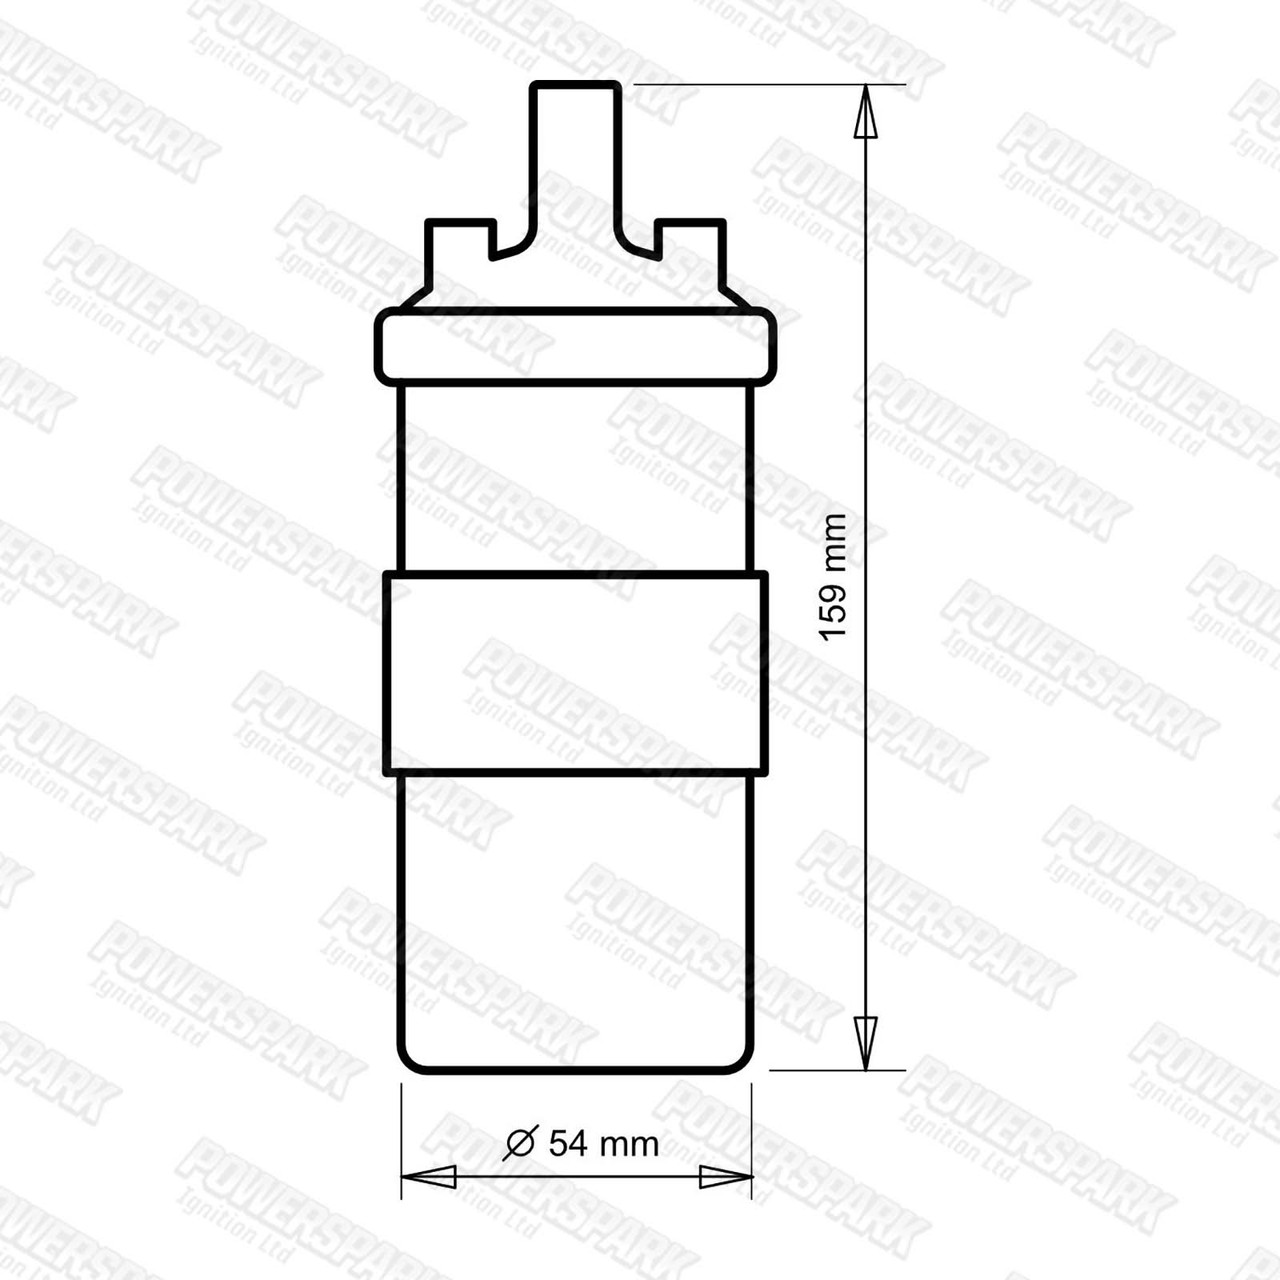 Viper Dry Ignition Coil Sports Ballast replaces DLB110 DLB102